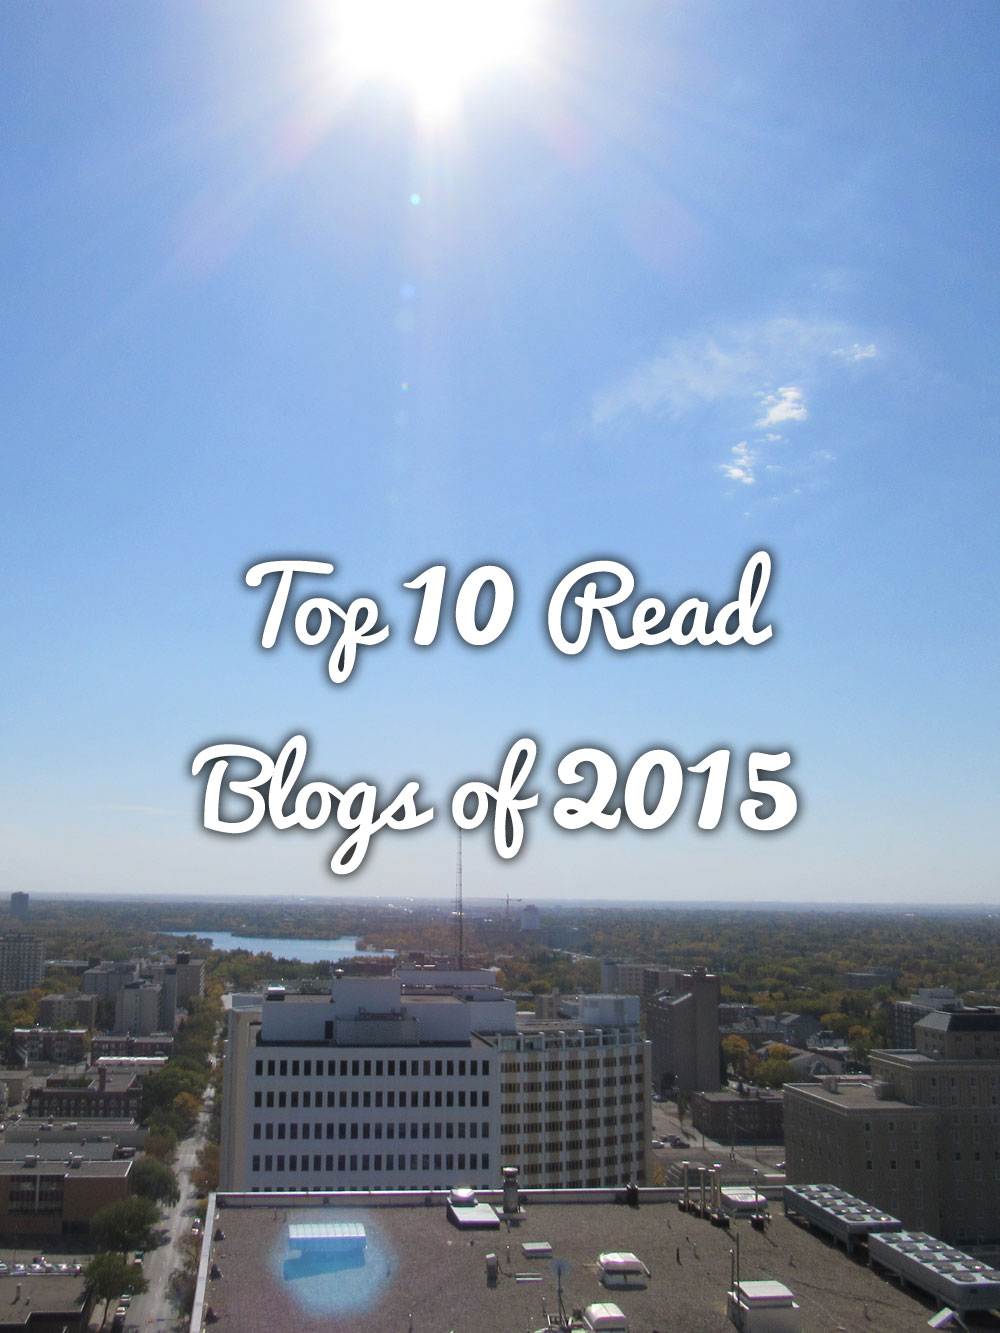 Top 10 Read Blogs of 2015